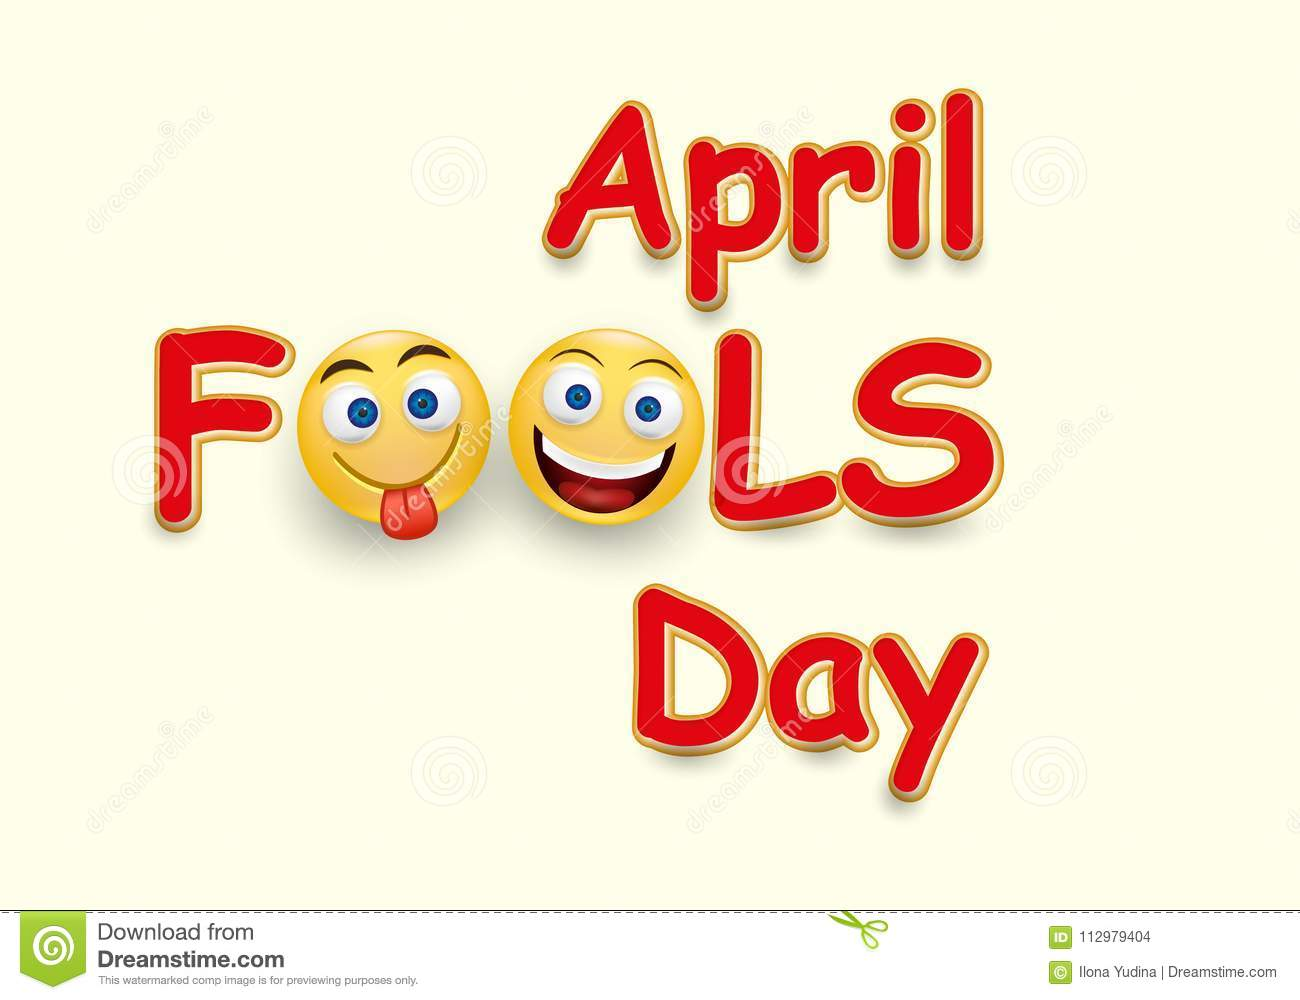 April fool`s day card - crazy facial expression on yellow background - April fool`s design template